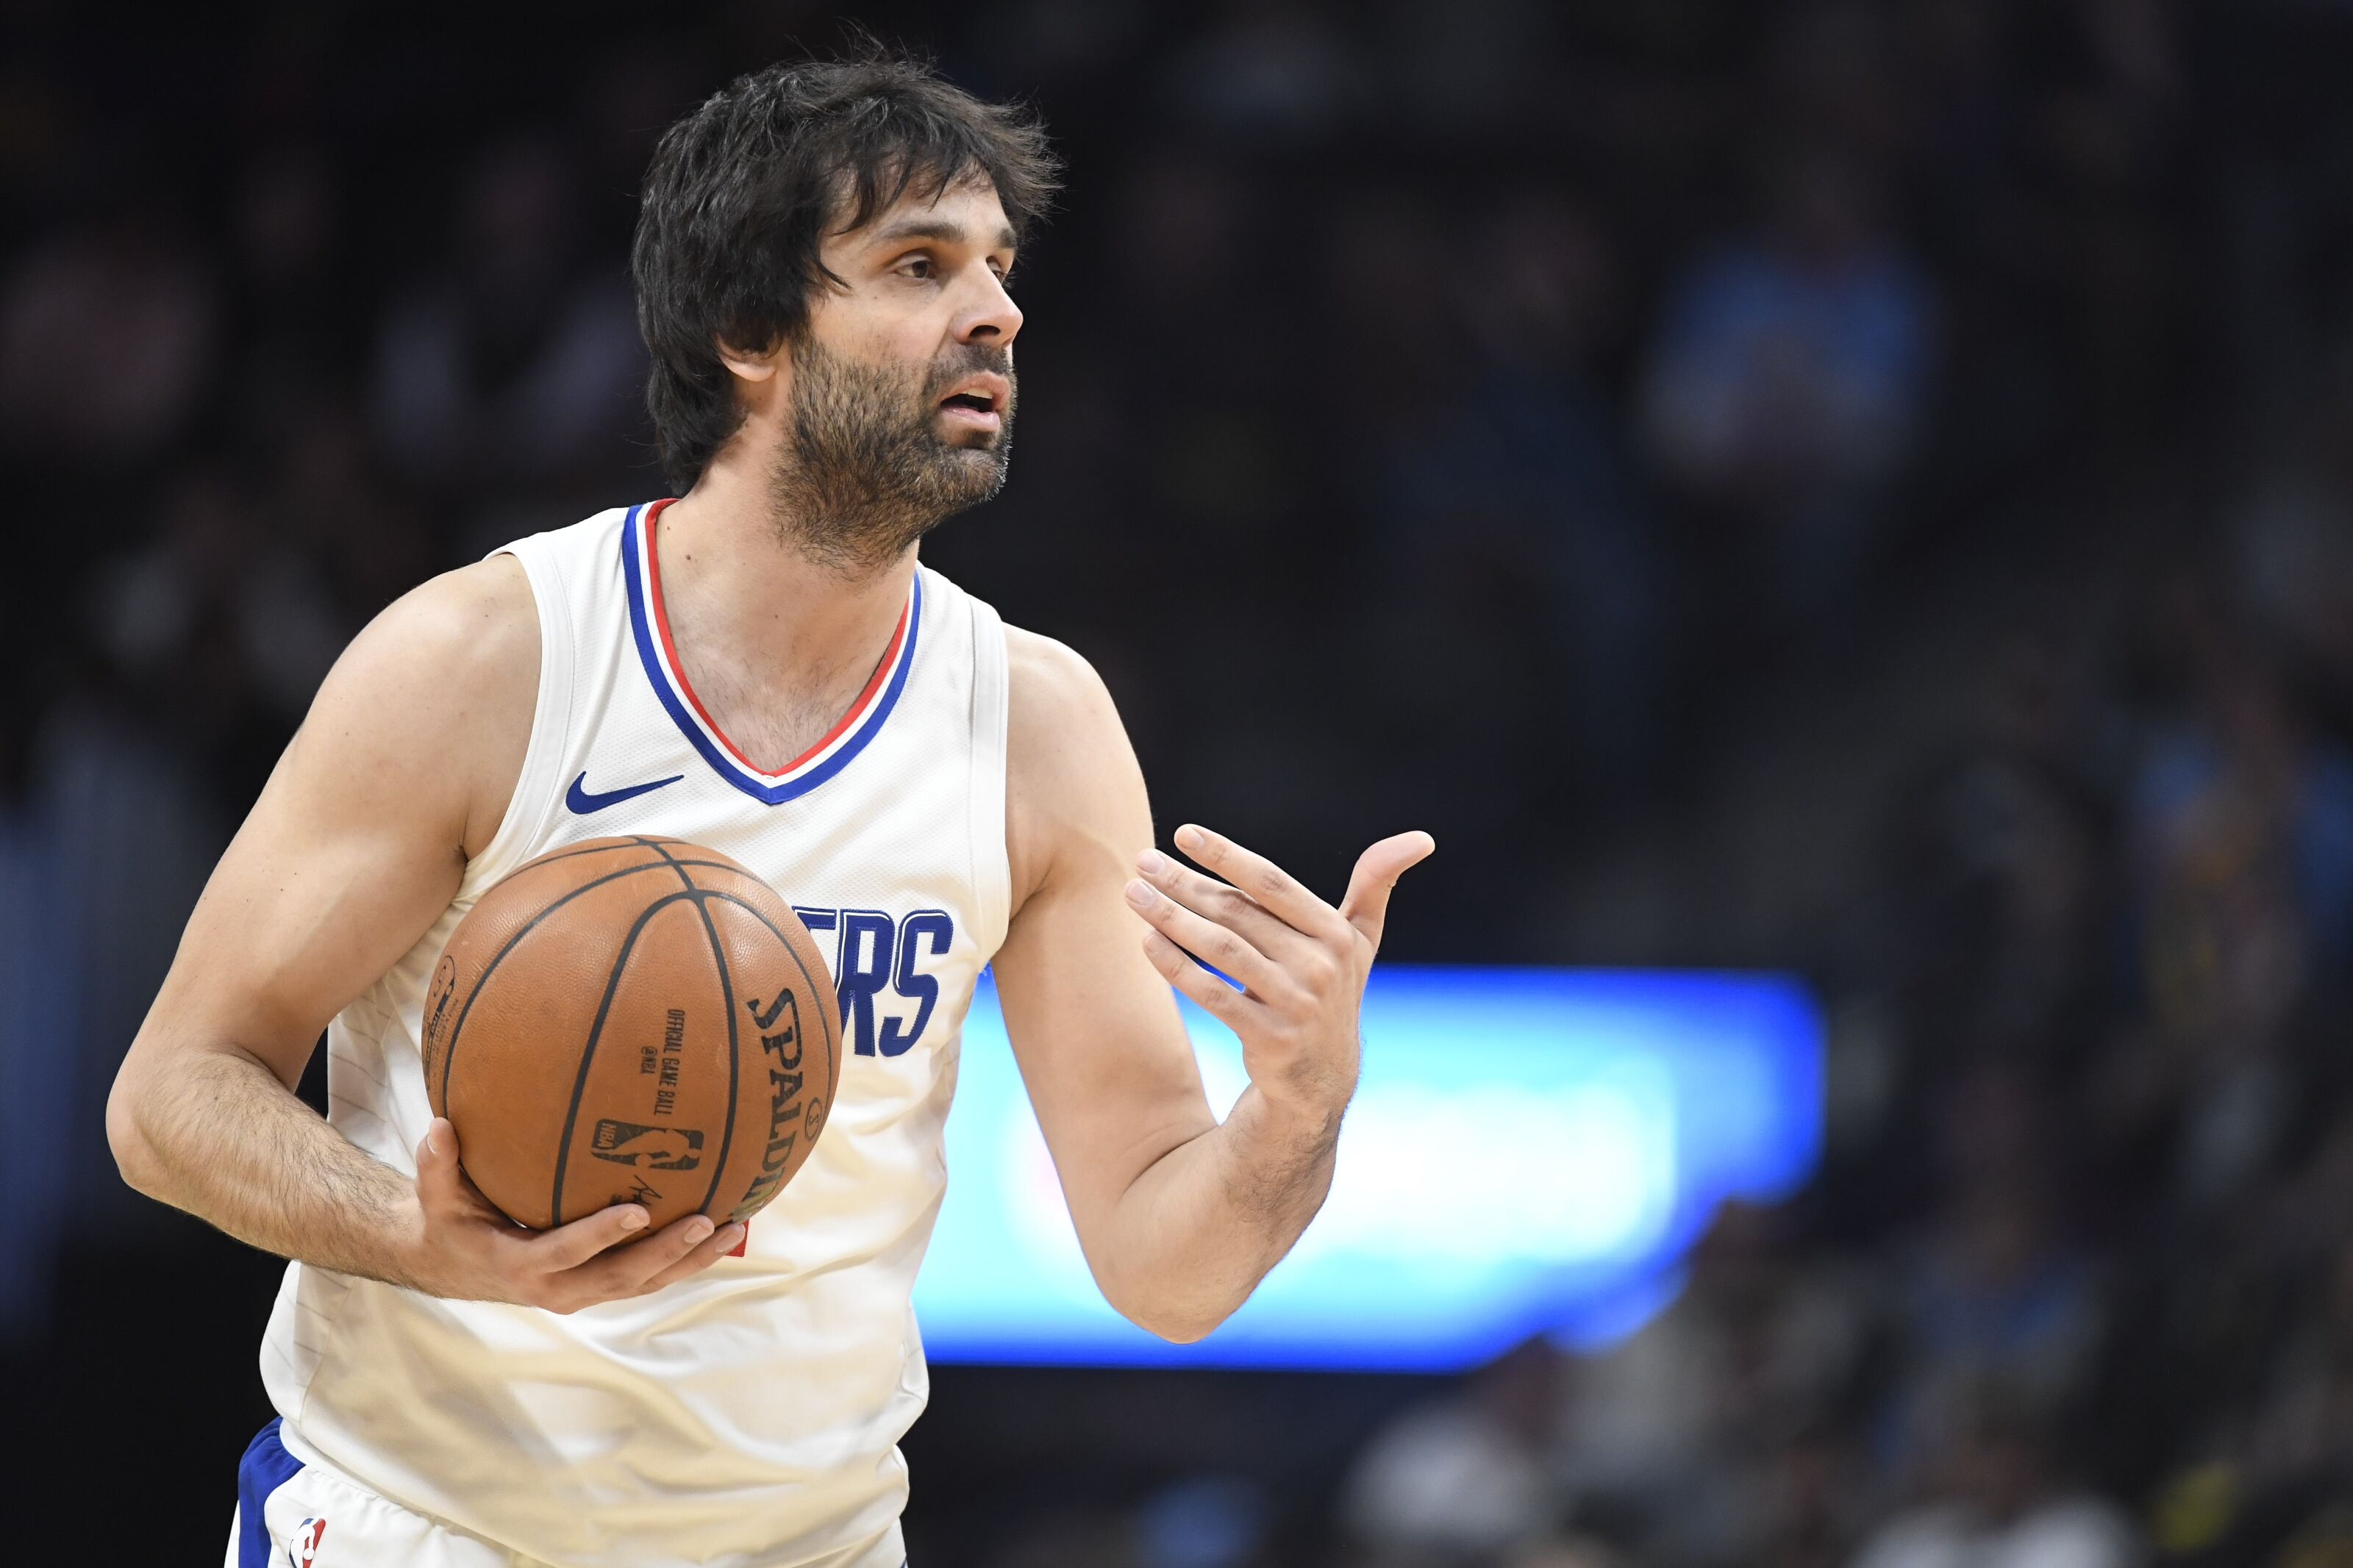 b3cea3529 The LA Clippers should consider trading Milos Teodosic for Markelle Fultz